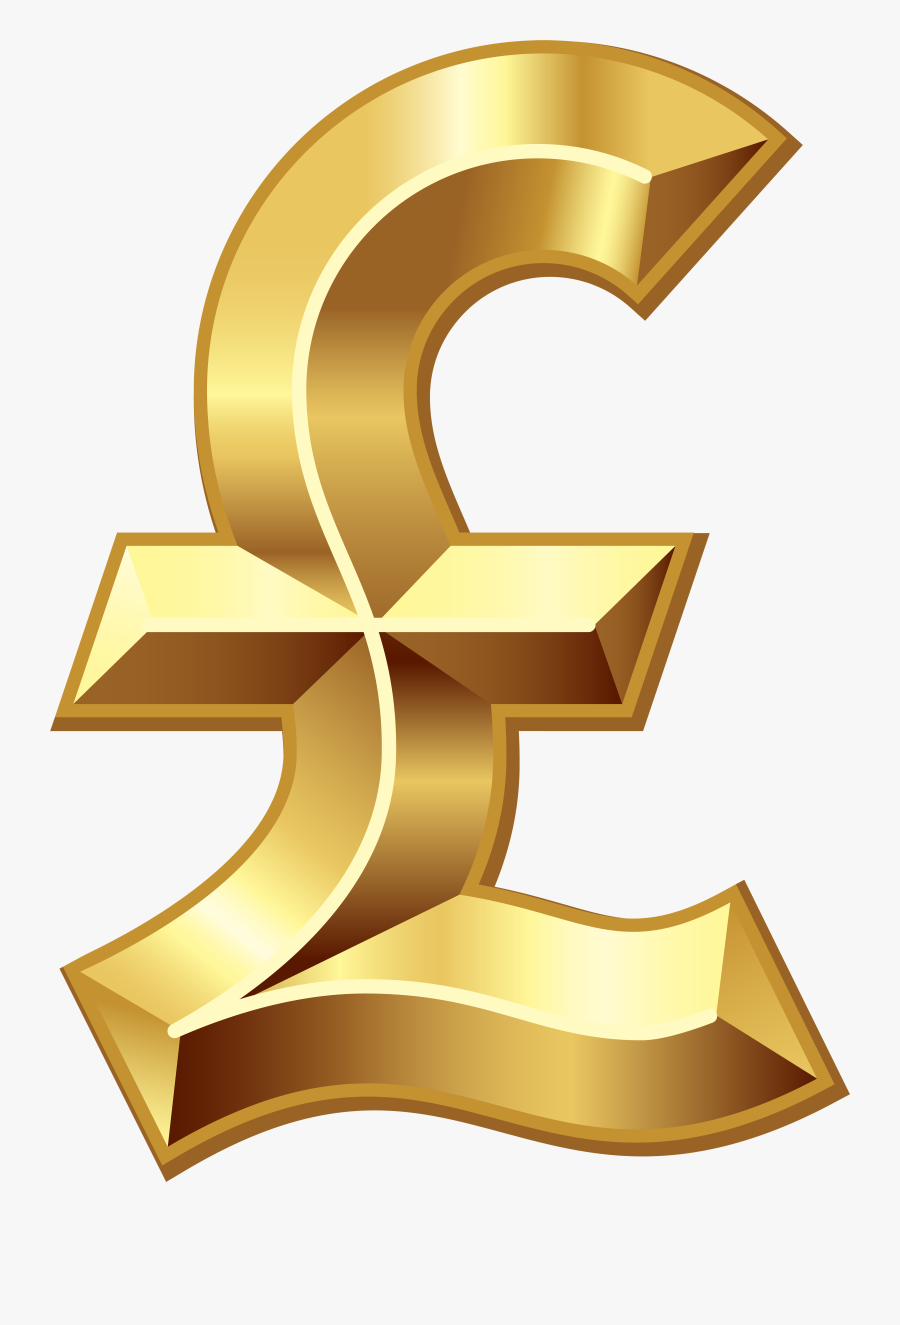 Pound Sterling Dollar Sign Pound Sign Currency Symbol - Pound Sterling Png, Transparent Clipart